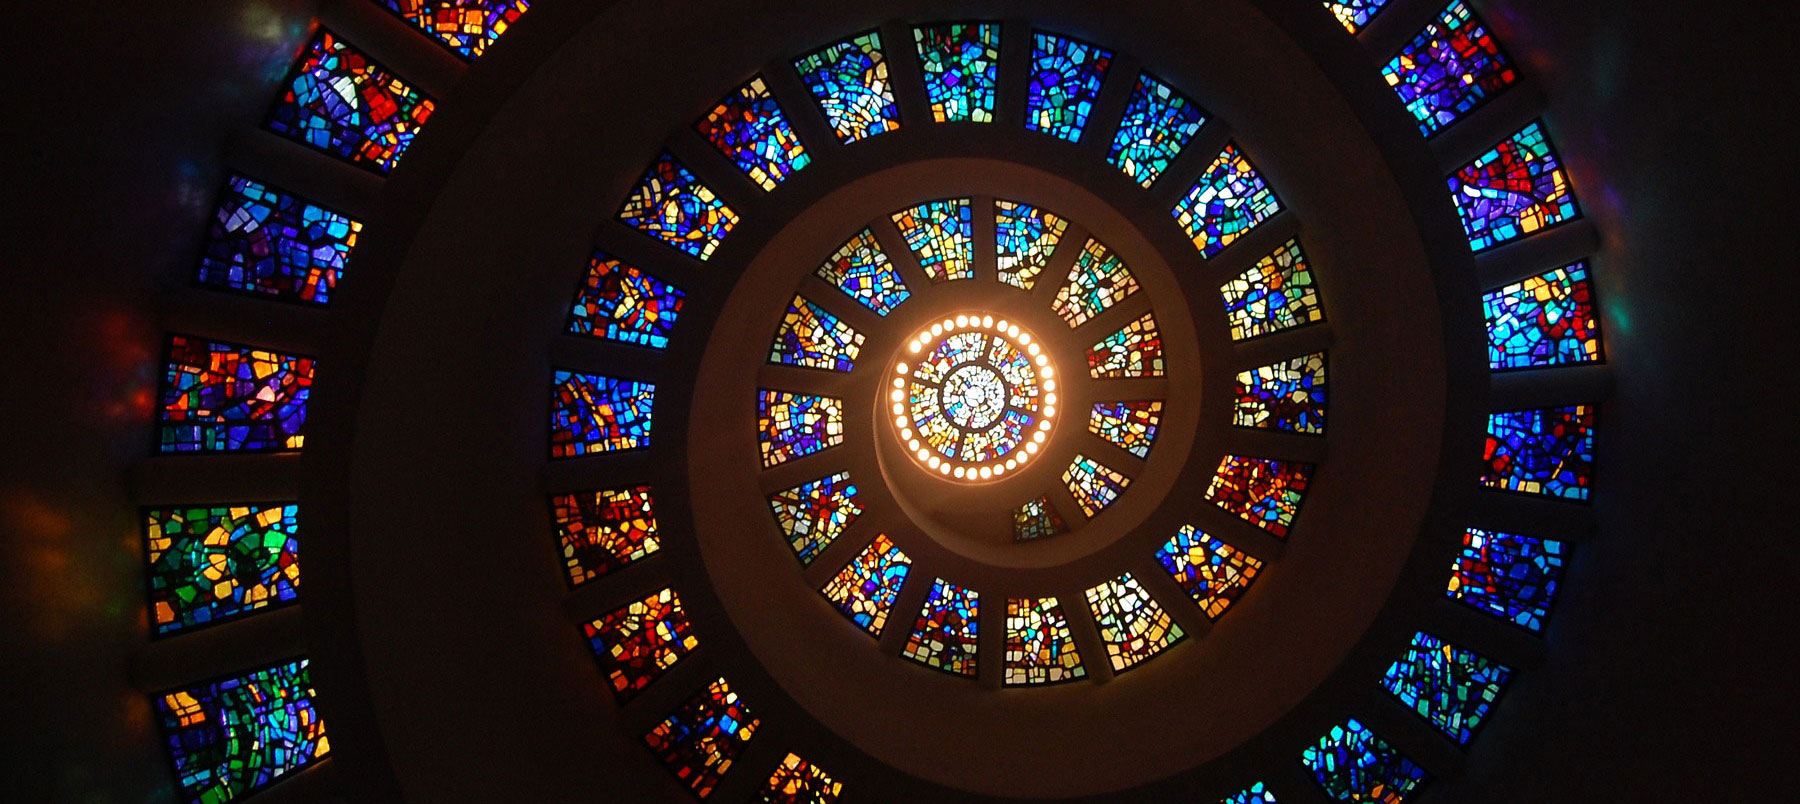 Theology, Religion and Philosophy image of stained glass windows